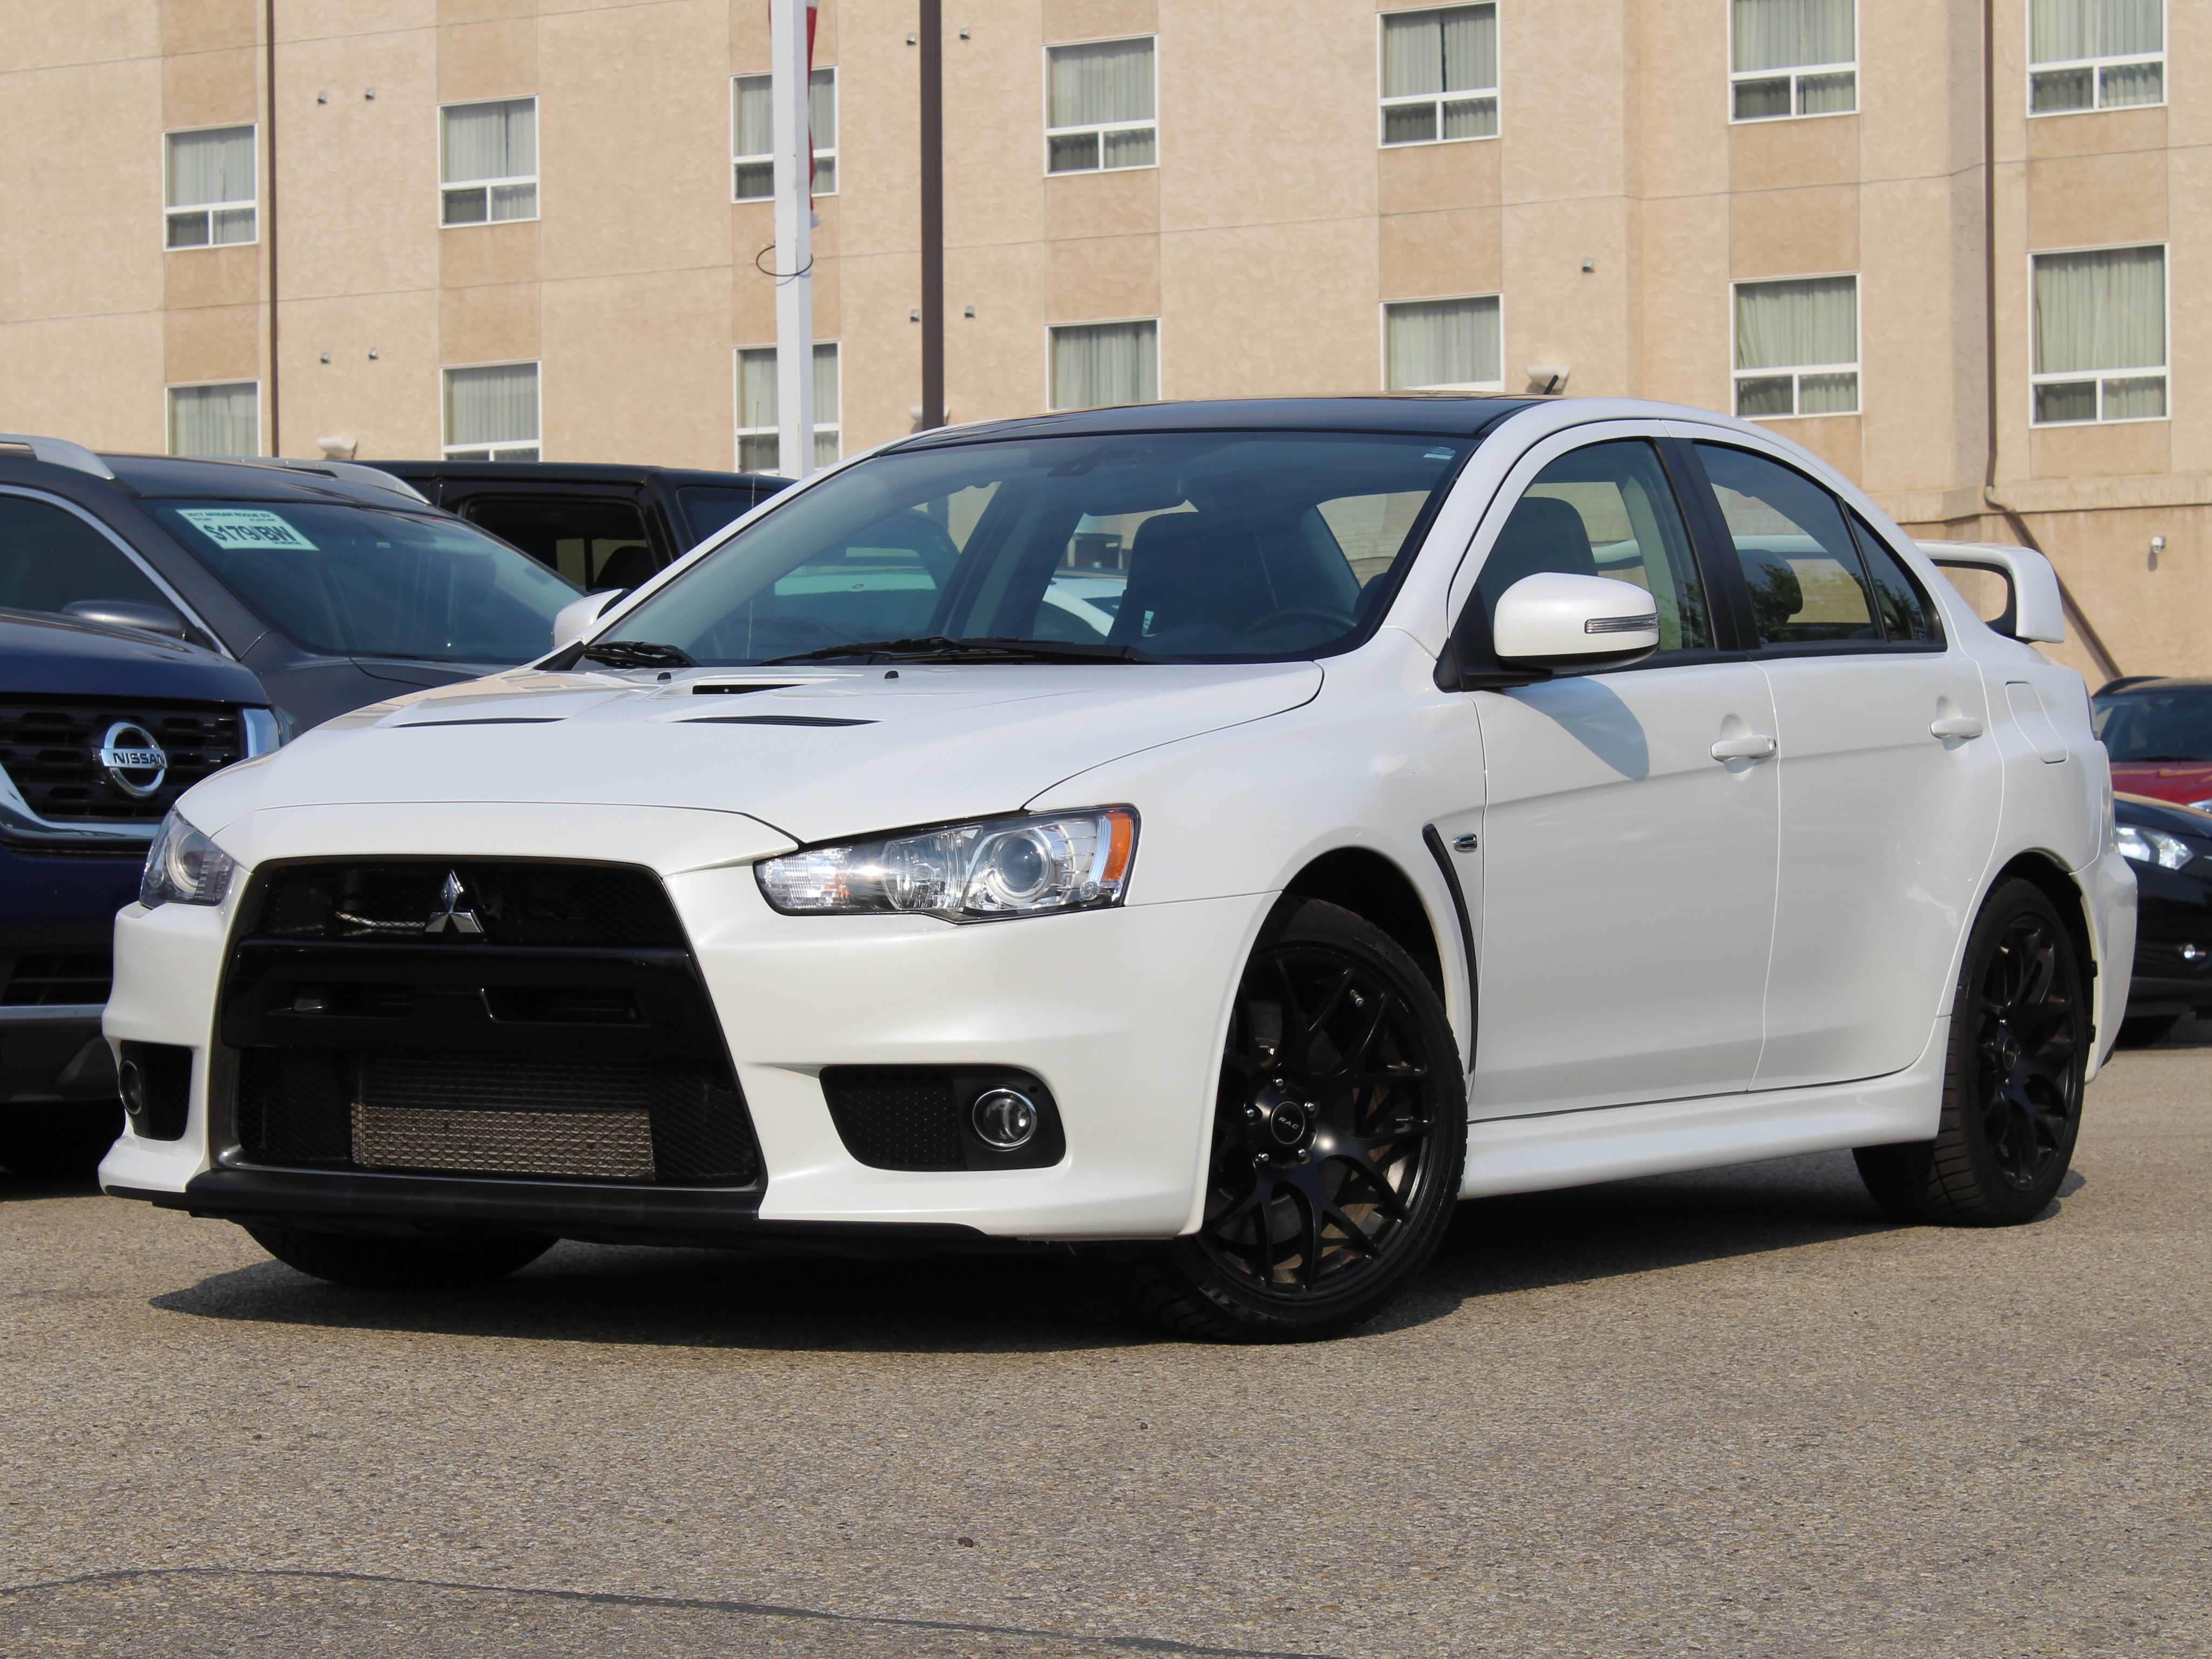 38 All New 2019 Mitsubishi Evo Spy Shoot by 2019 Mitsubishi Evo